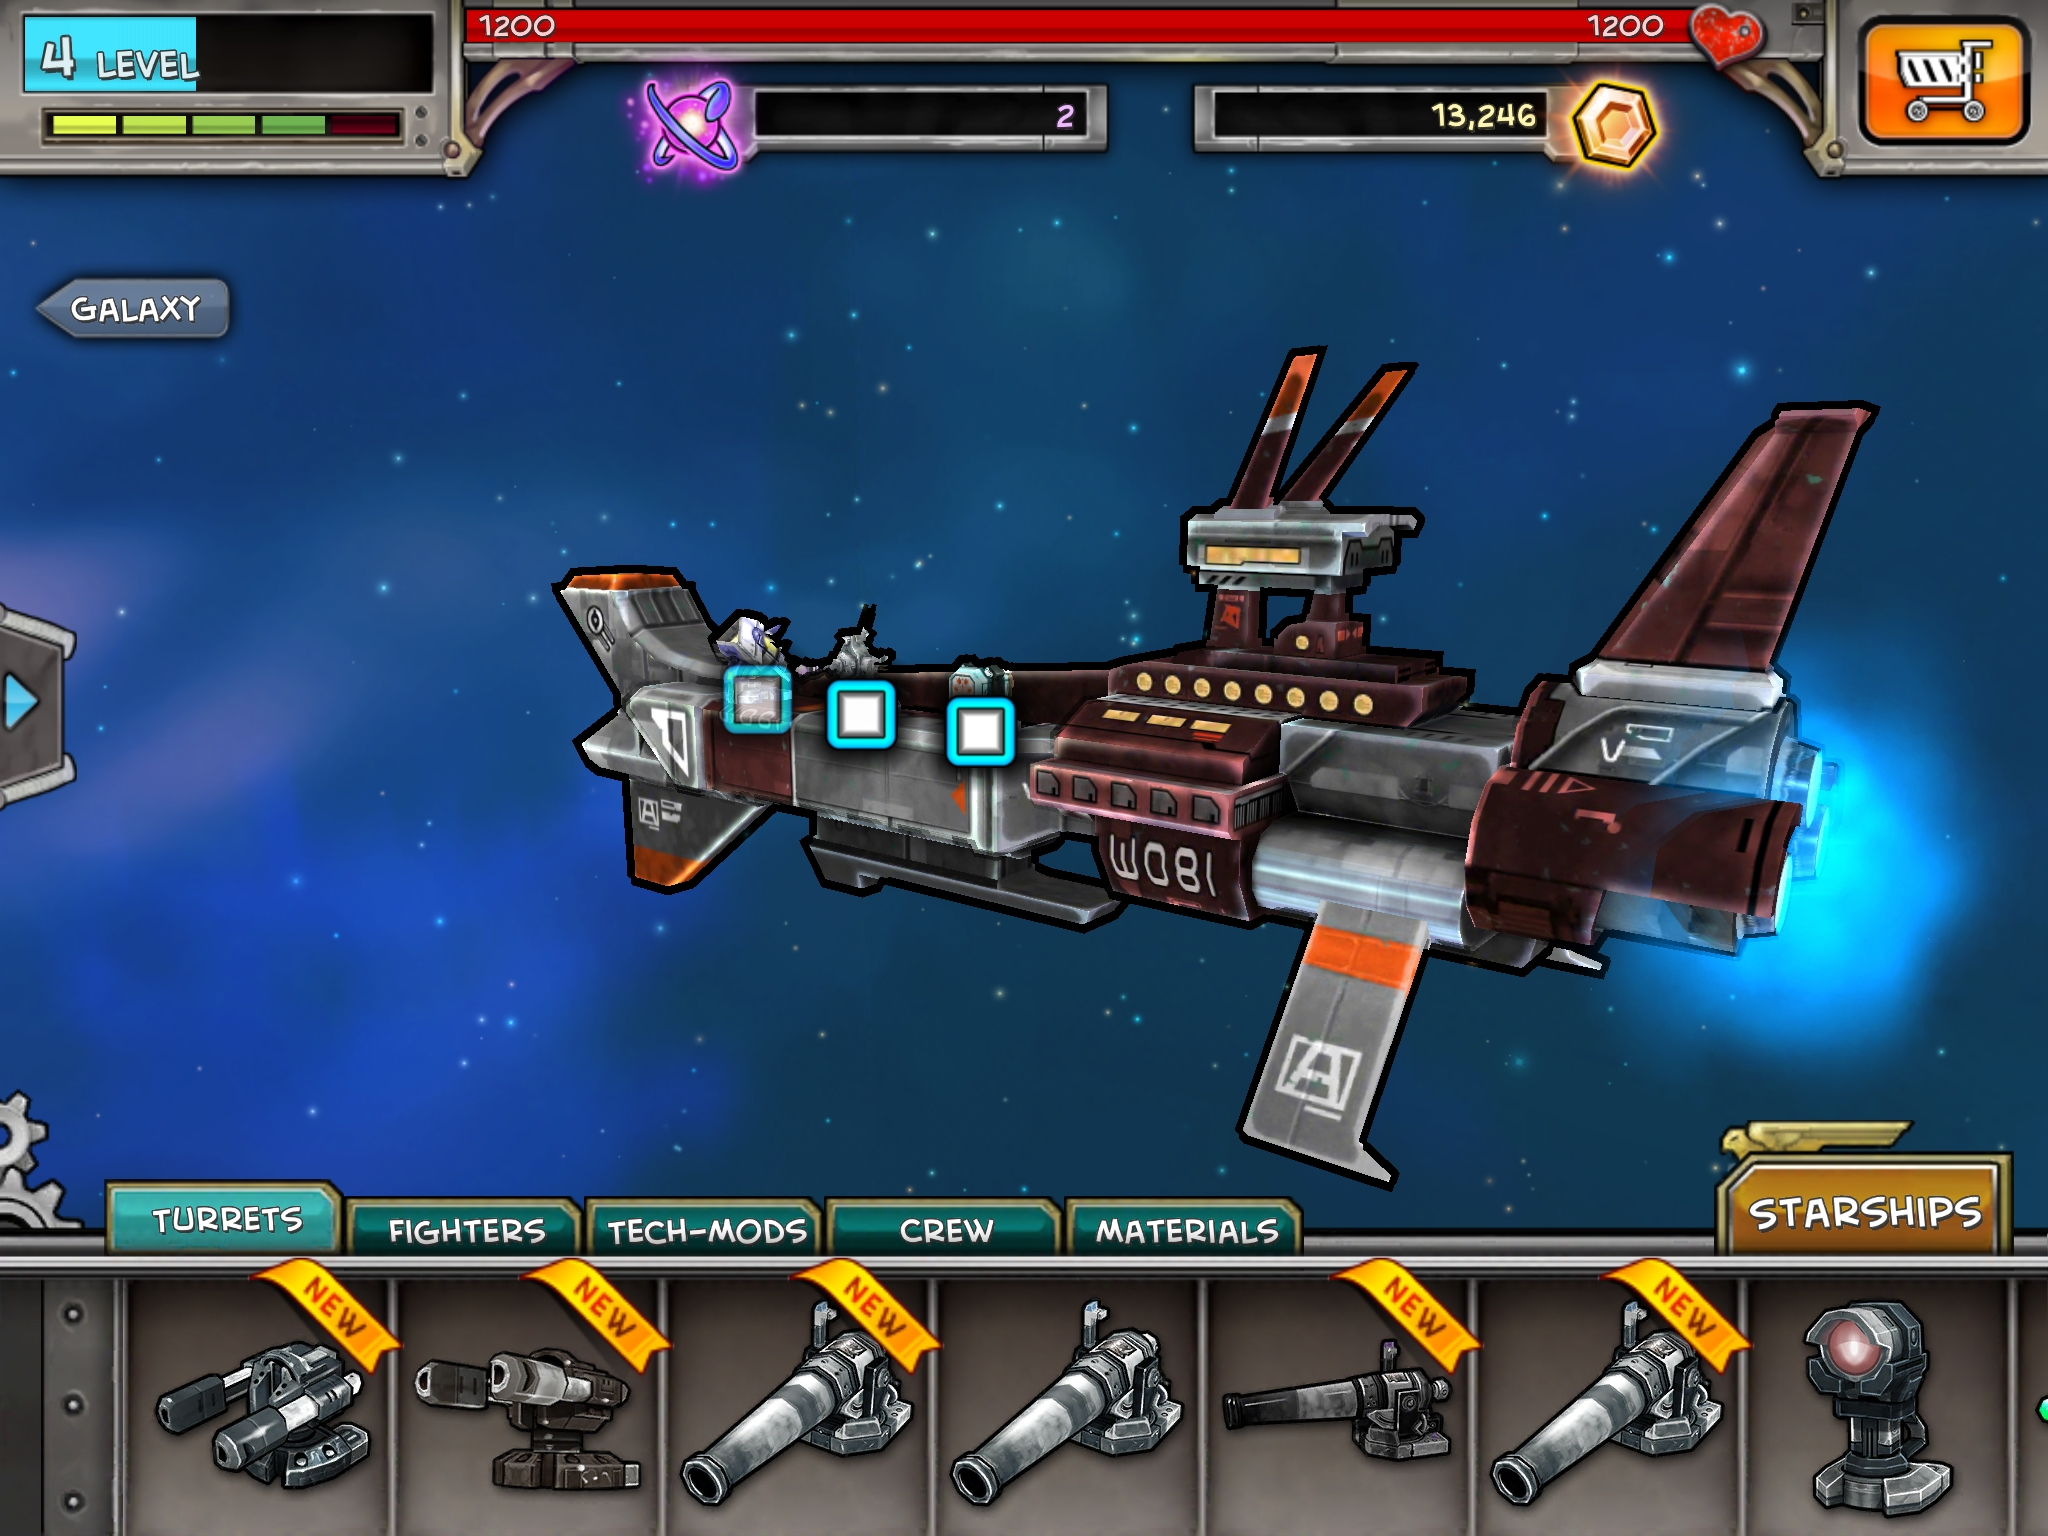 [Update] PlunderNauts is an upcoming space pirate sim from the maker of Starhawk and Twisted Metal: Black